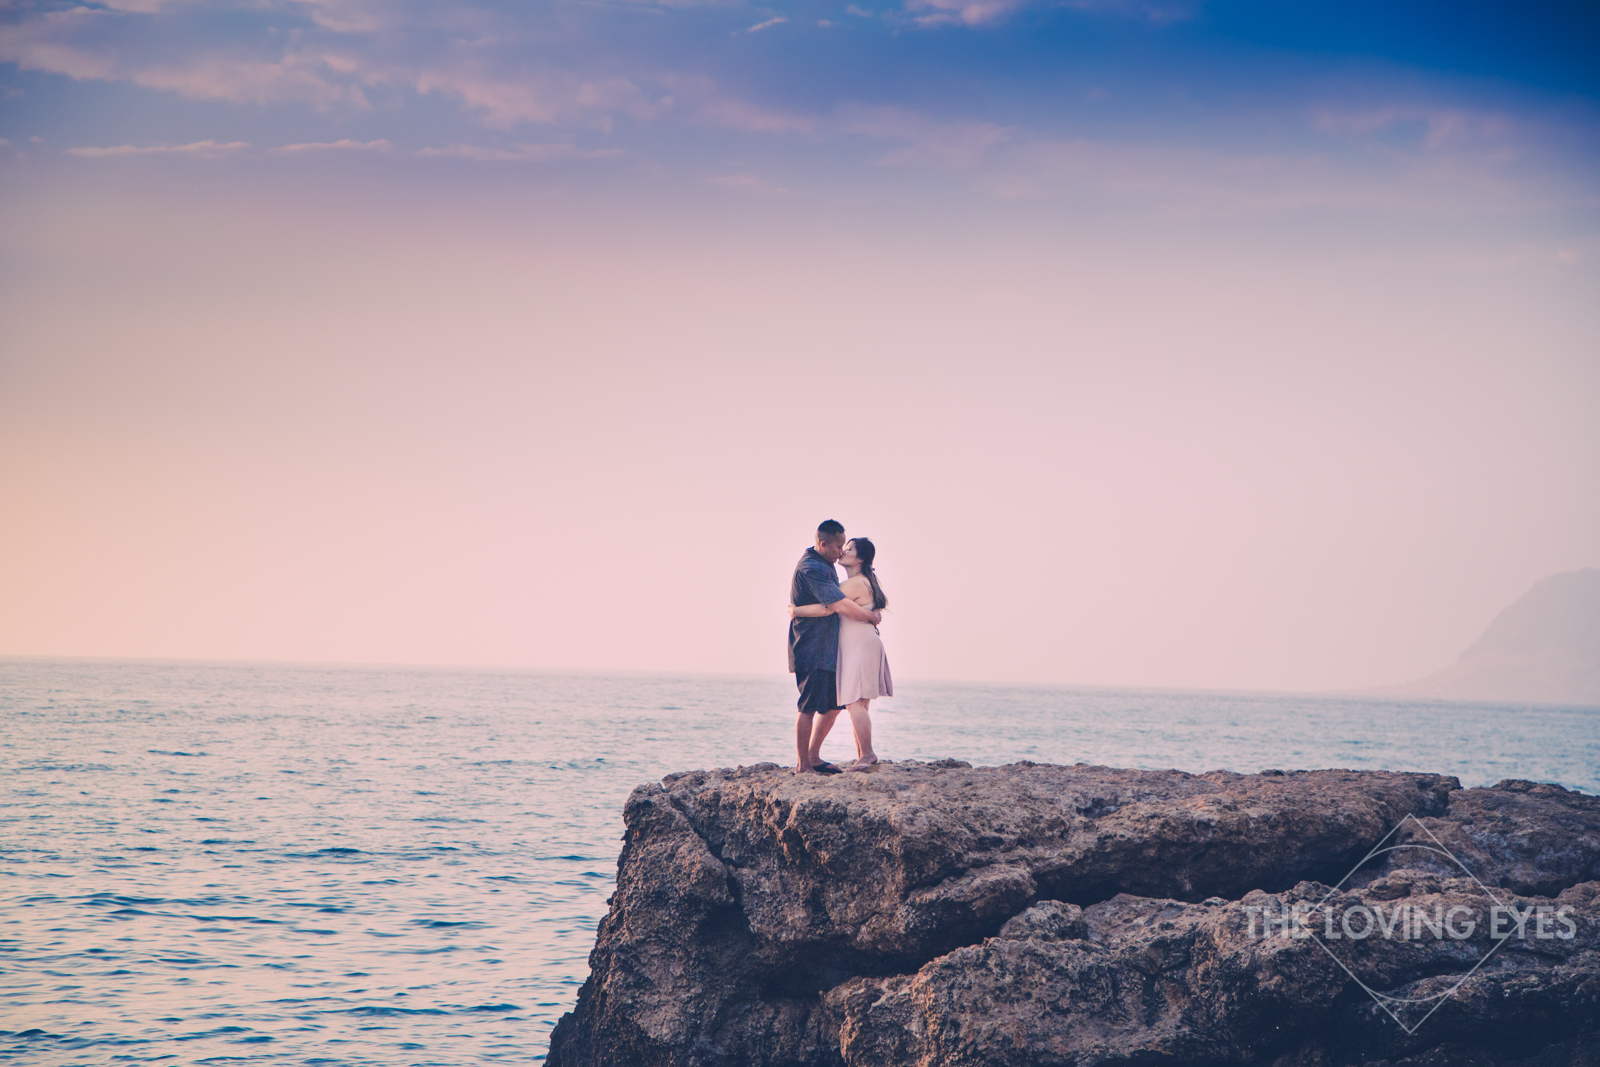 Jeana_and_Clyde_Engagement-10.jpg